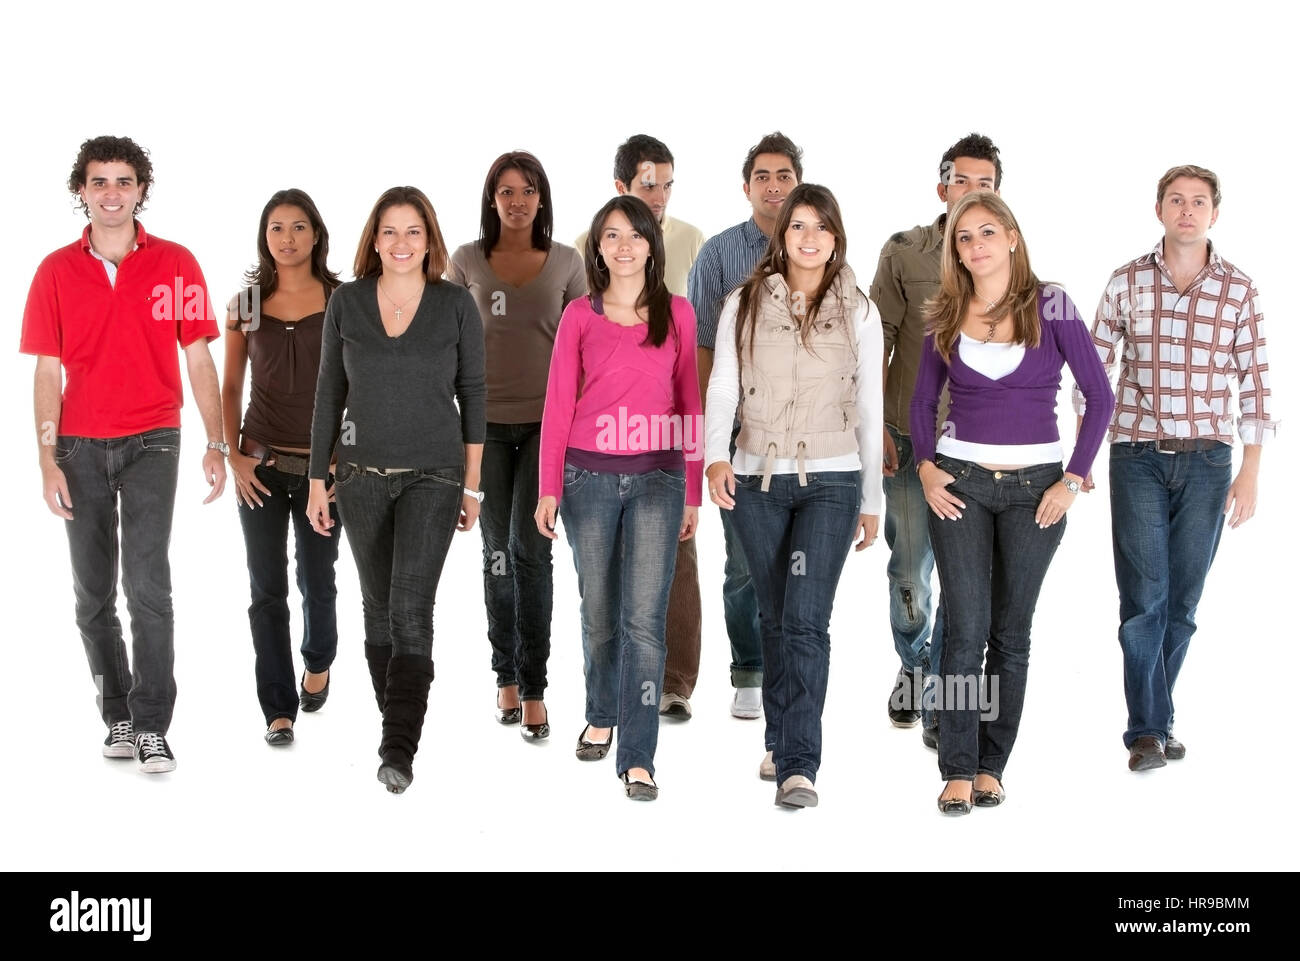 group of young people walking and smiling isolated over a white background - Stock Image